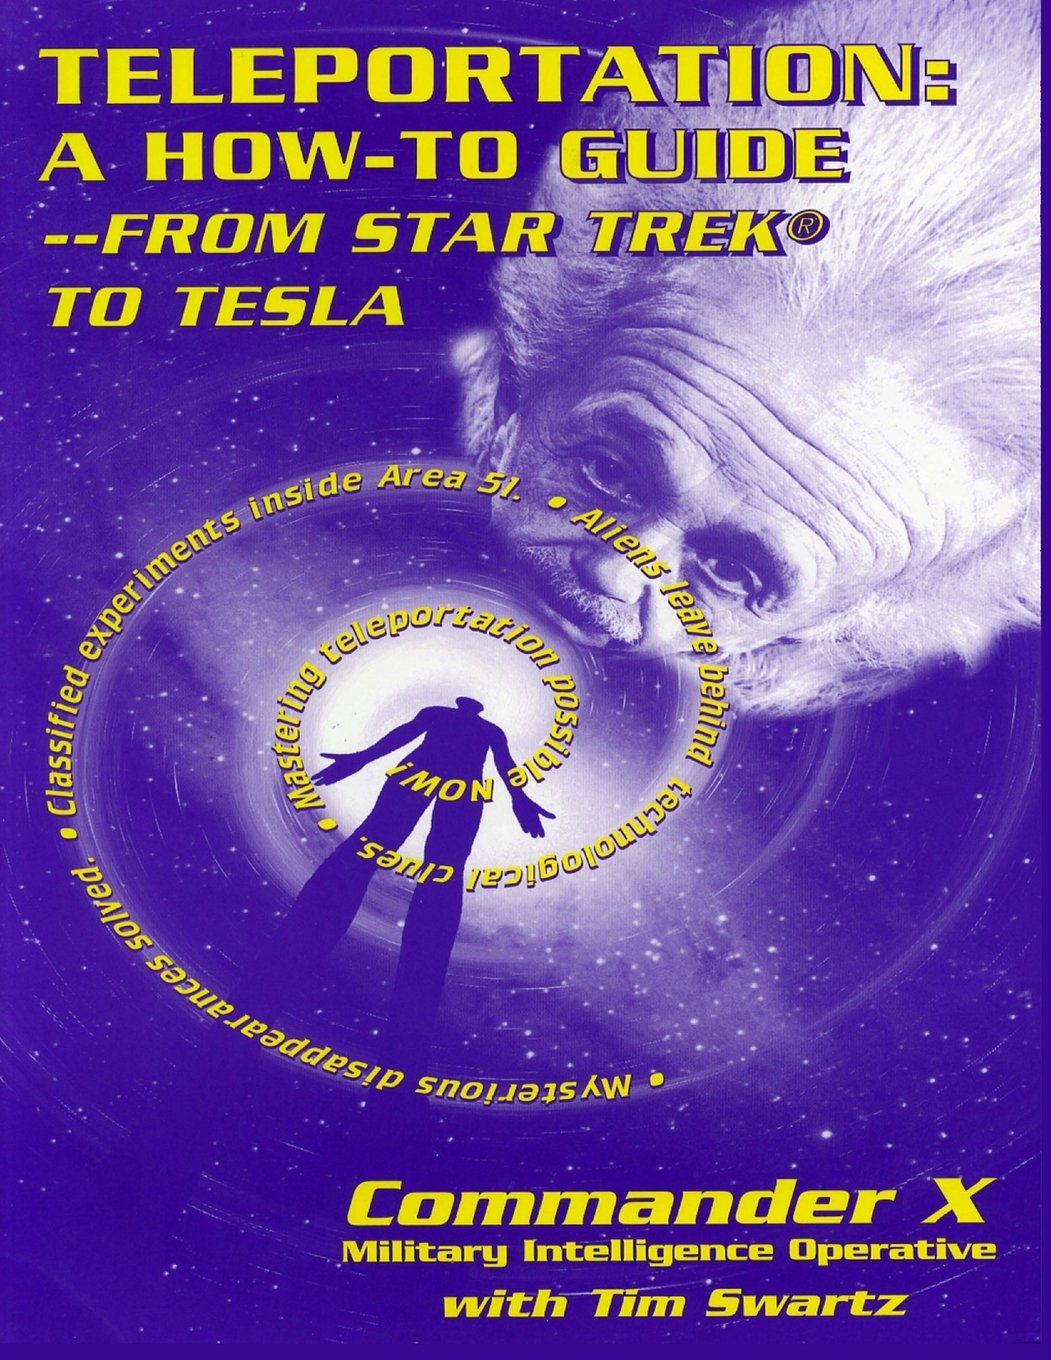 Teleportation How to Guide : From Star Trek to Tesla: A How to Guide: From Star Trek to Tesla: X, Commander, Swartz, Tim: Amazon.com.au: Books